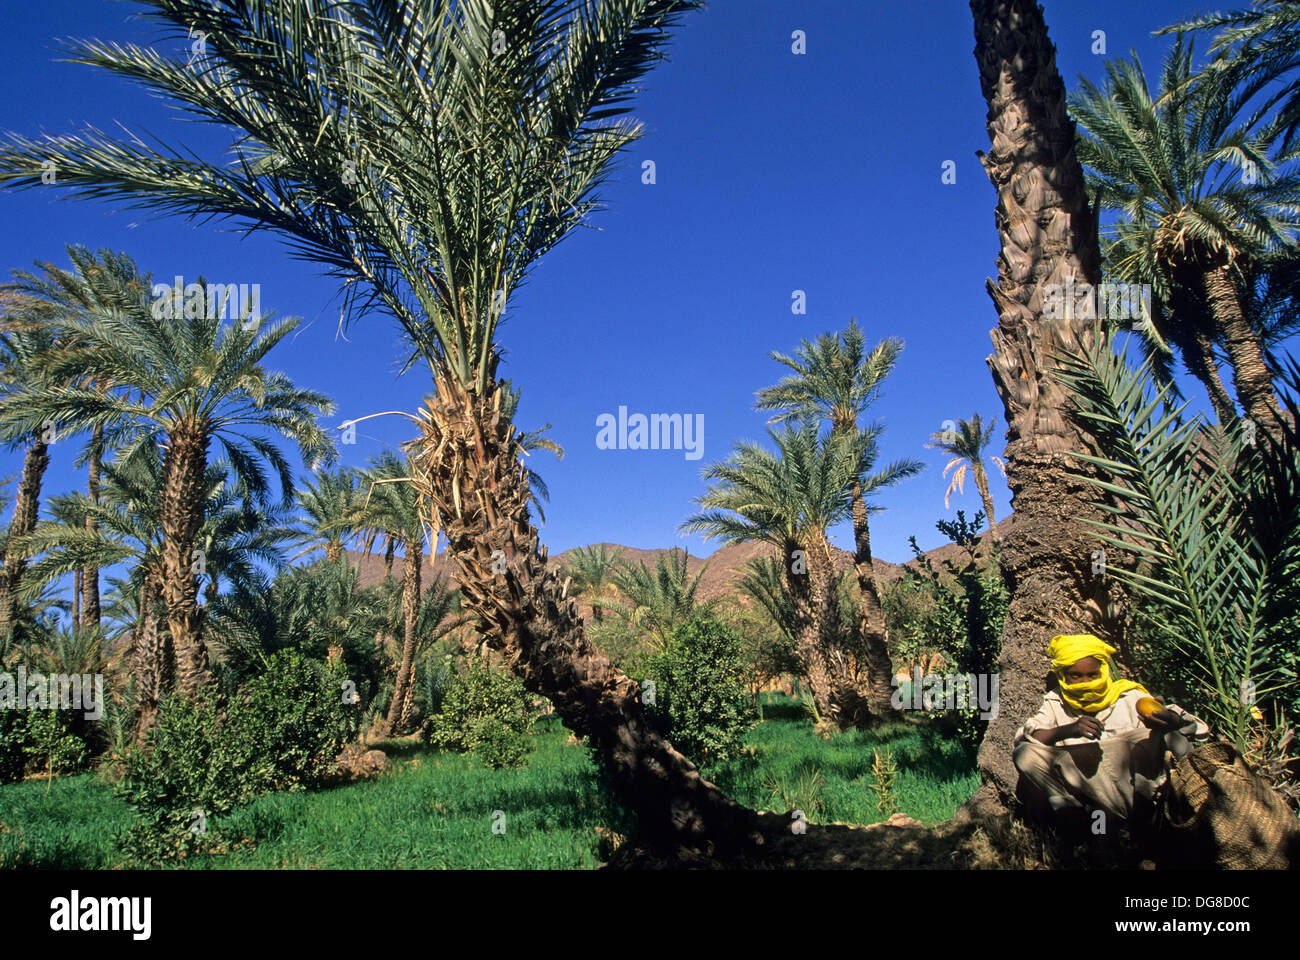 garden and palm grove of Timia,Aïr,Niger,Western Africa - Stock Image